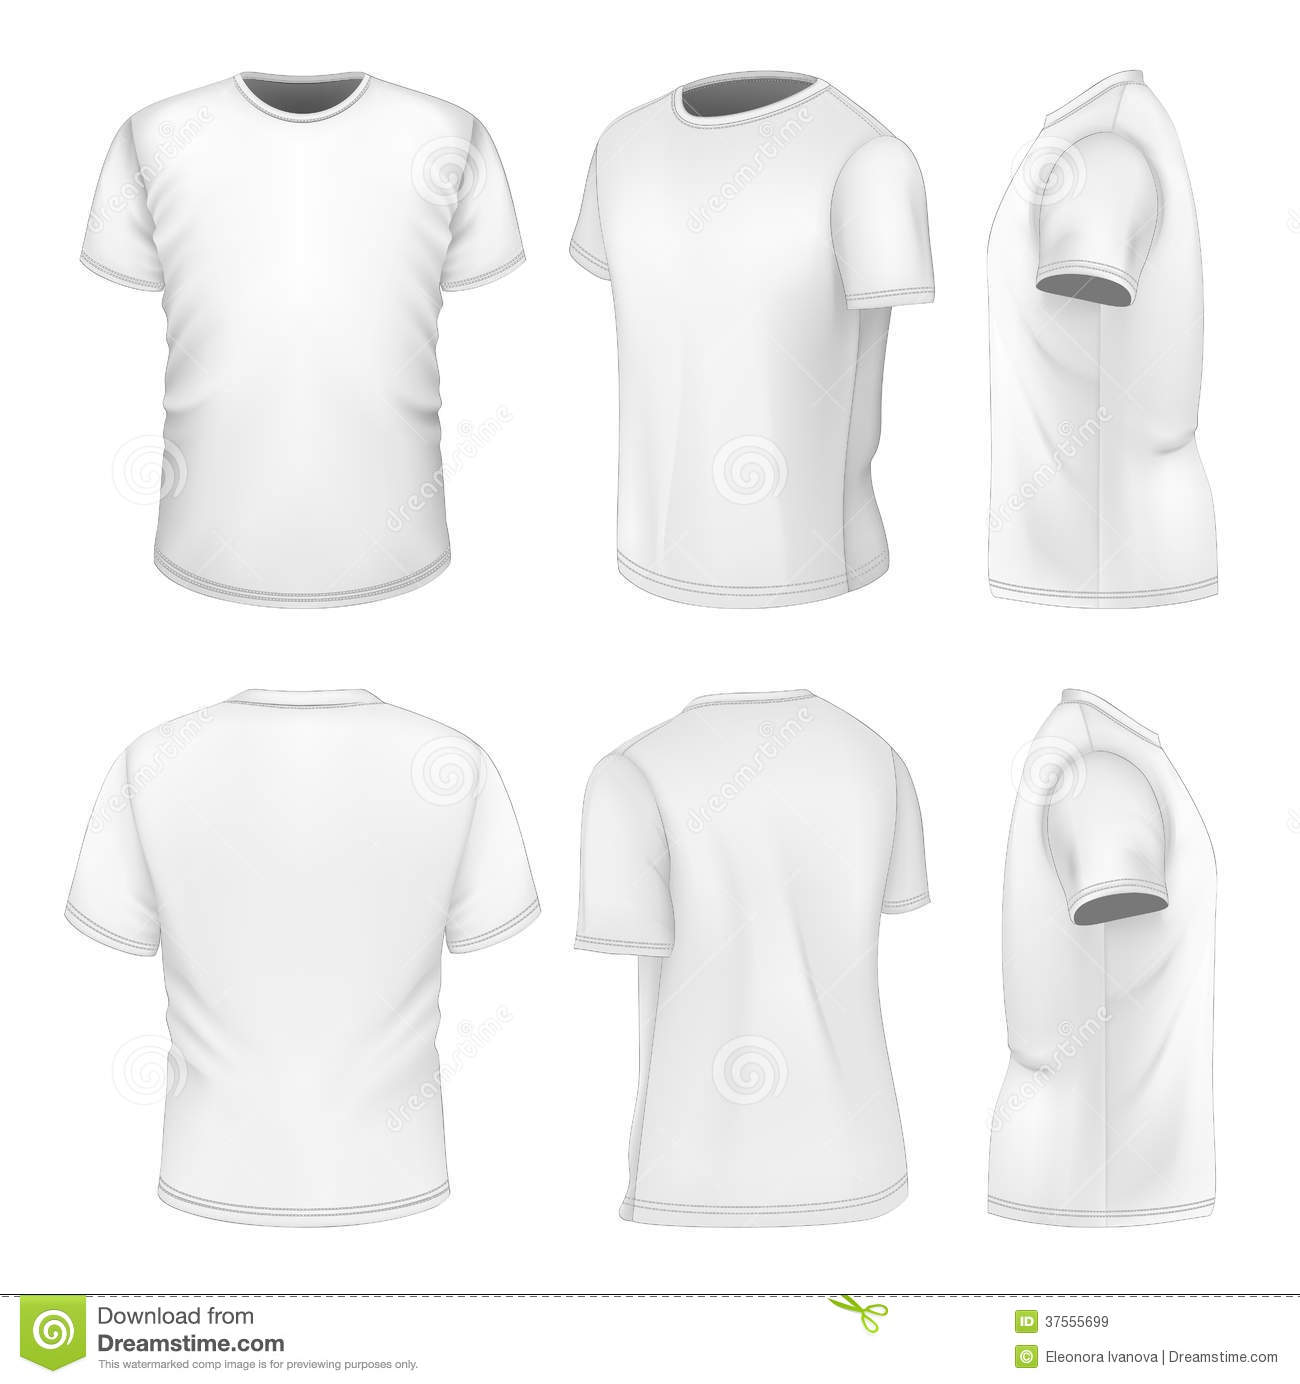 d3a2f37db Photo-realistic vector illustration. All six views men's white short sleeve  t-shirt design templates. Illustration contains gradient mesh.